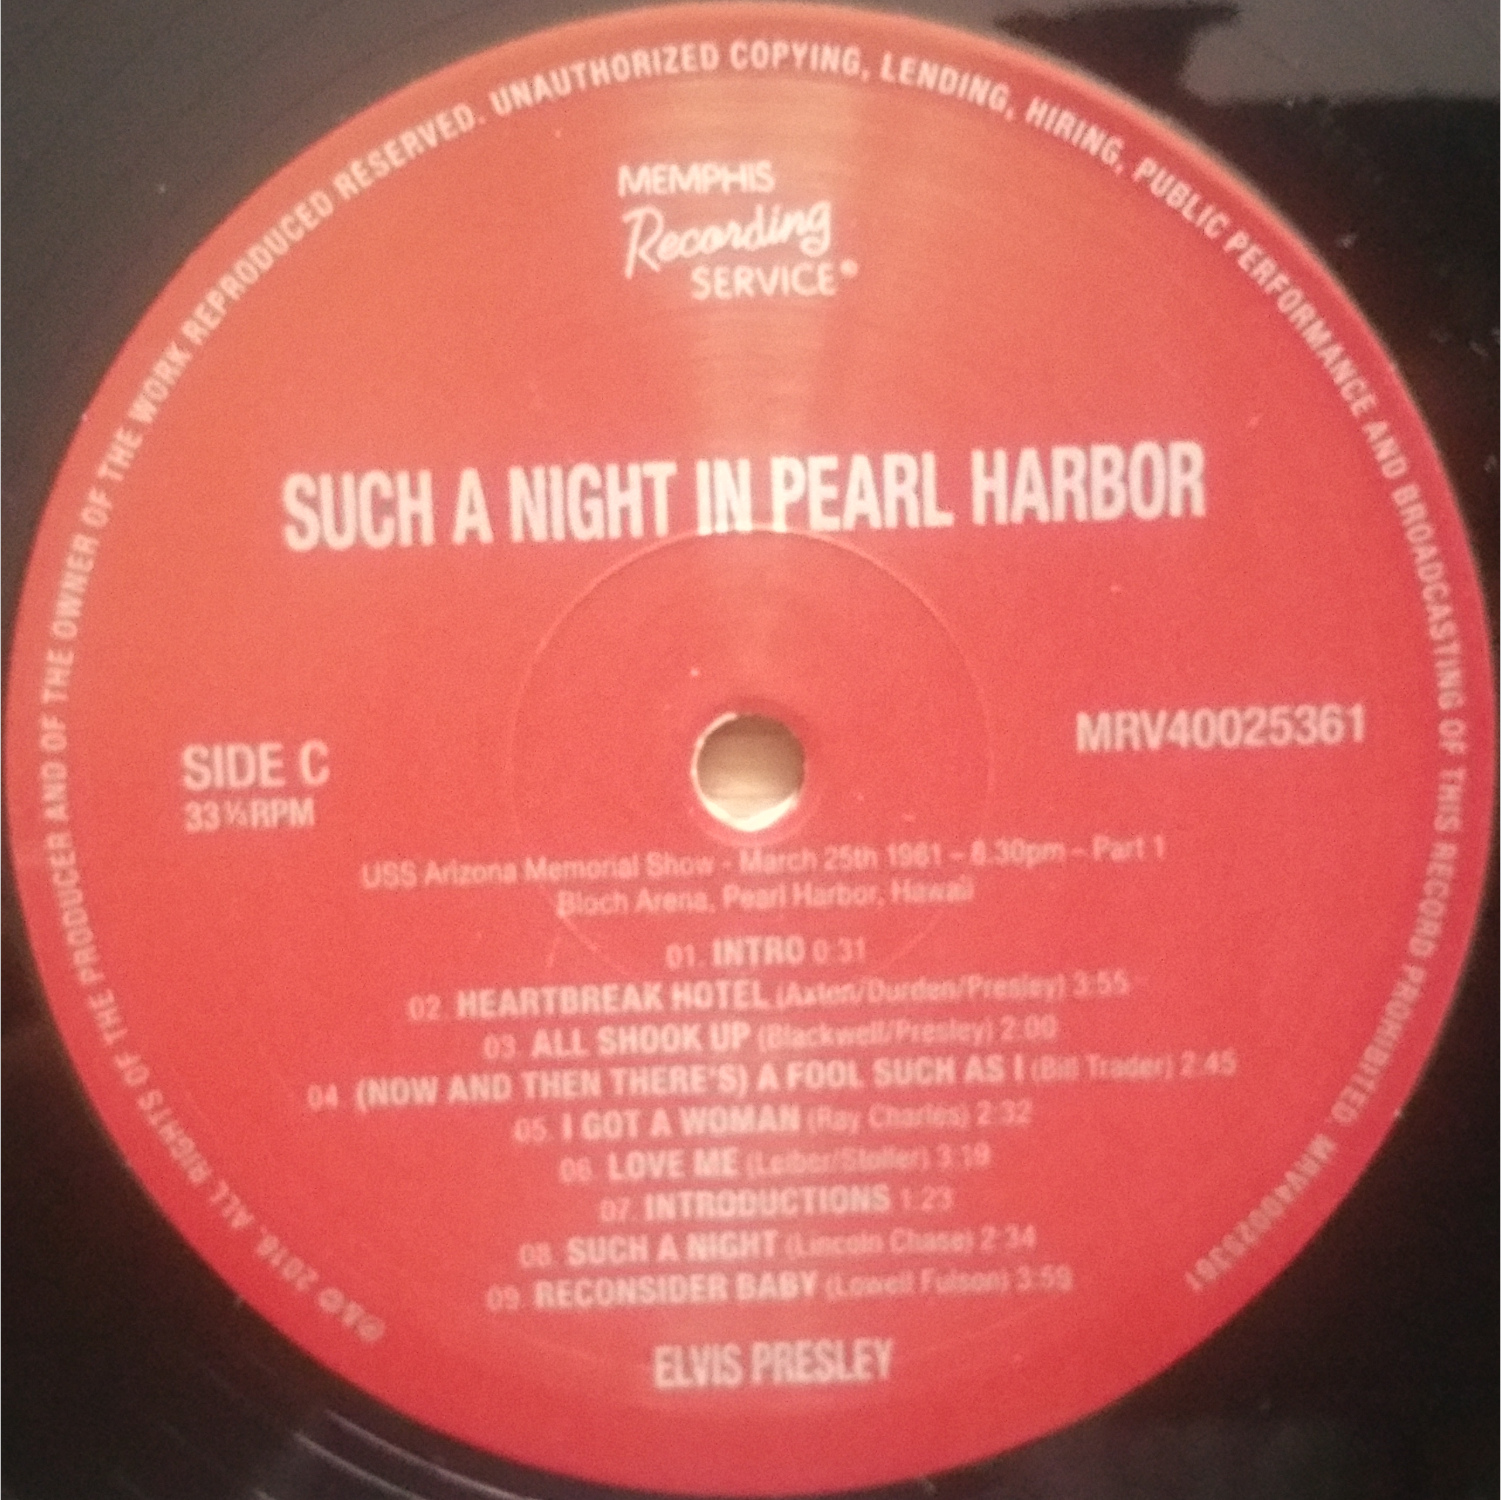 SUCH A NIGHT IN PEARL HARBOR Suchanightinpearlharb2xk9x